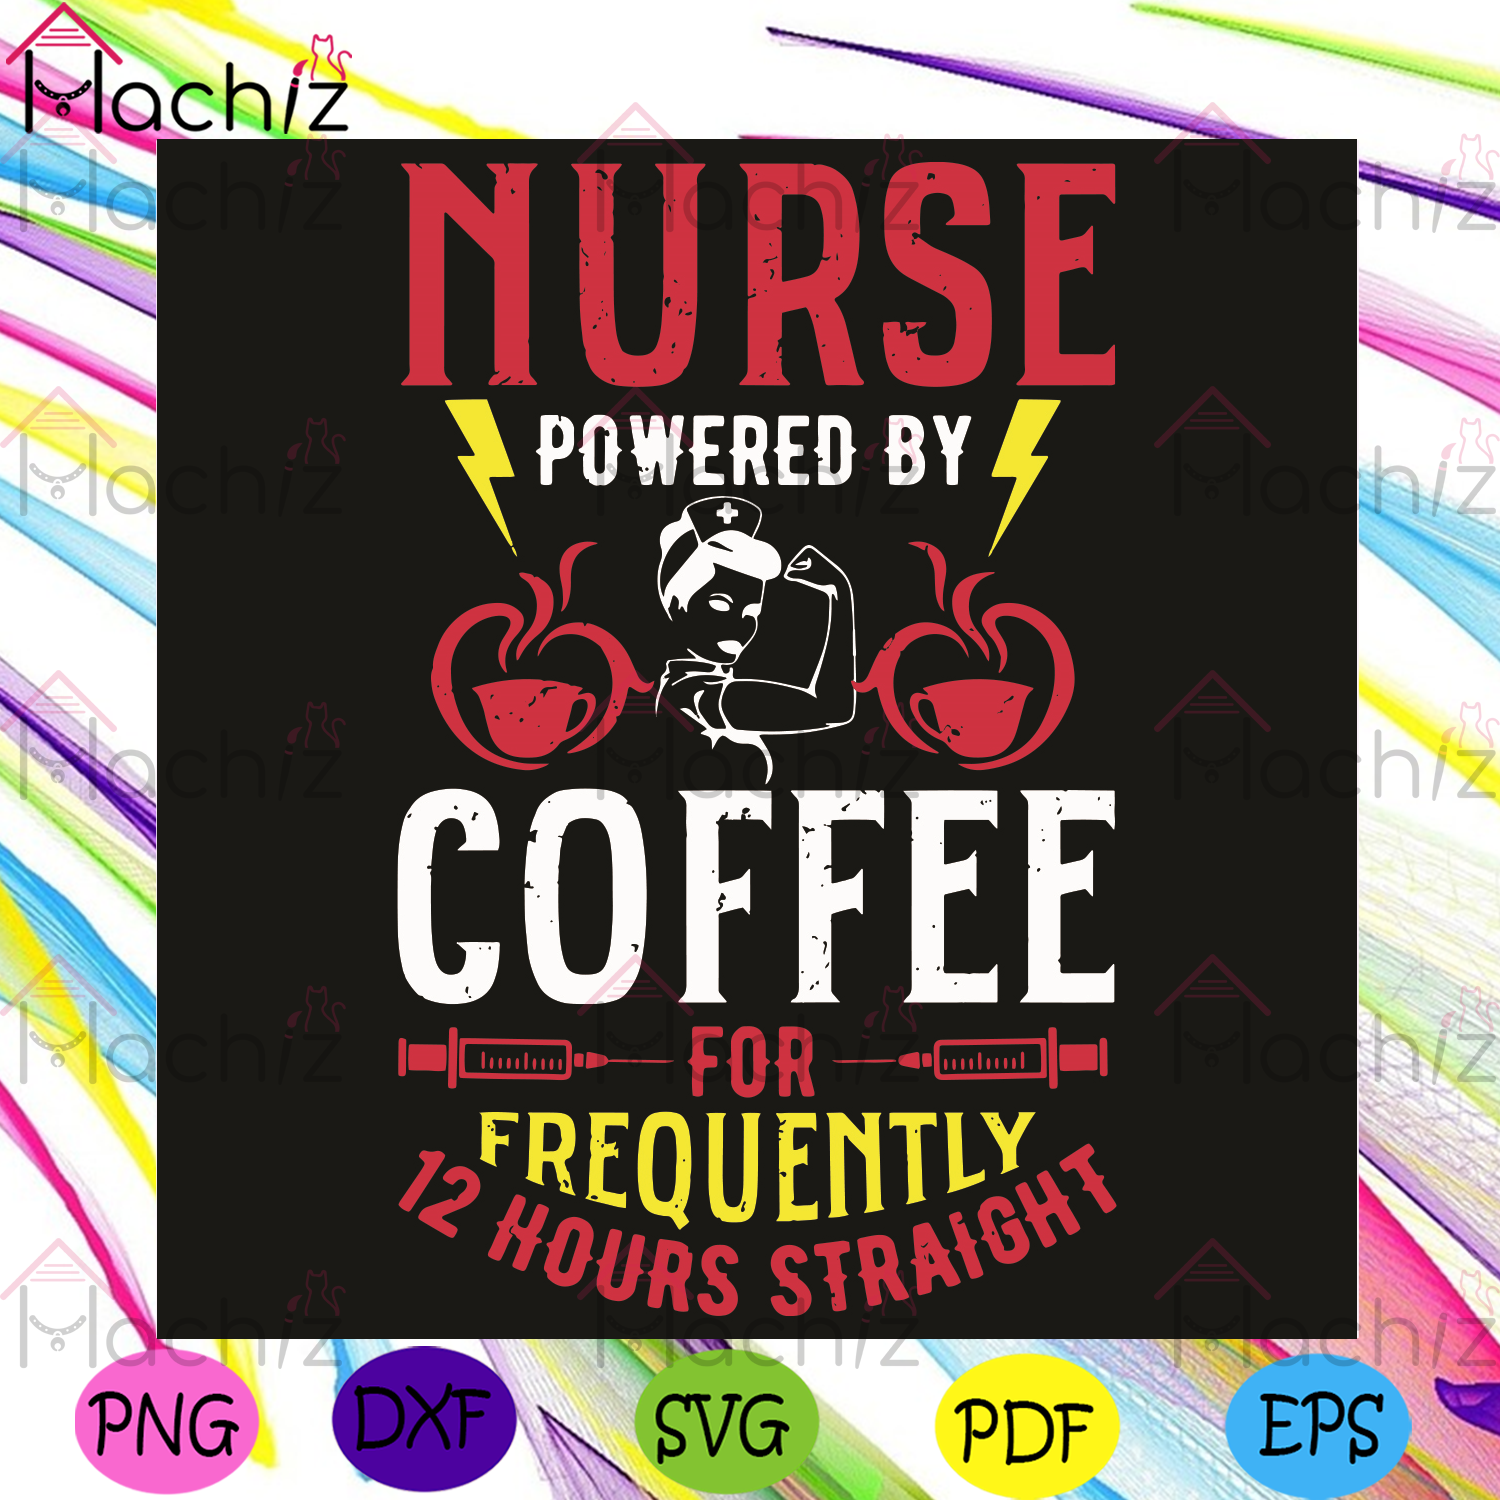 Nurse Powered By Coffee For Frequently 12 Hours Straight Svg, Trending Svg, Nurse Svg, Black Girl Svg, Rosie Girl Svg, Brave Girl, Strong Girl Svg, Coffee Svg, Nurse Lovers Svg, Nurse Gifts Svg, Coffee Lovers Svg, Healthy Life Svg